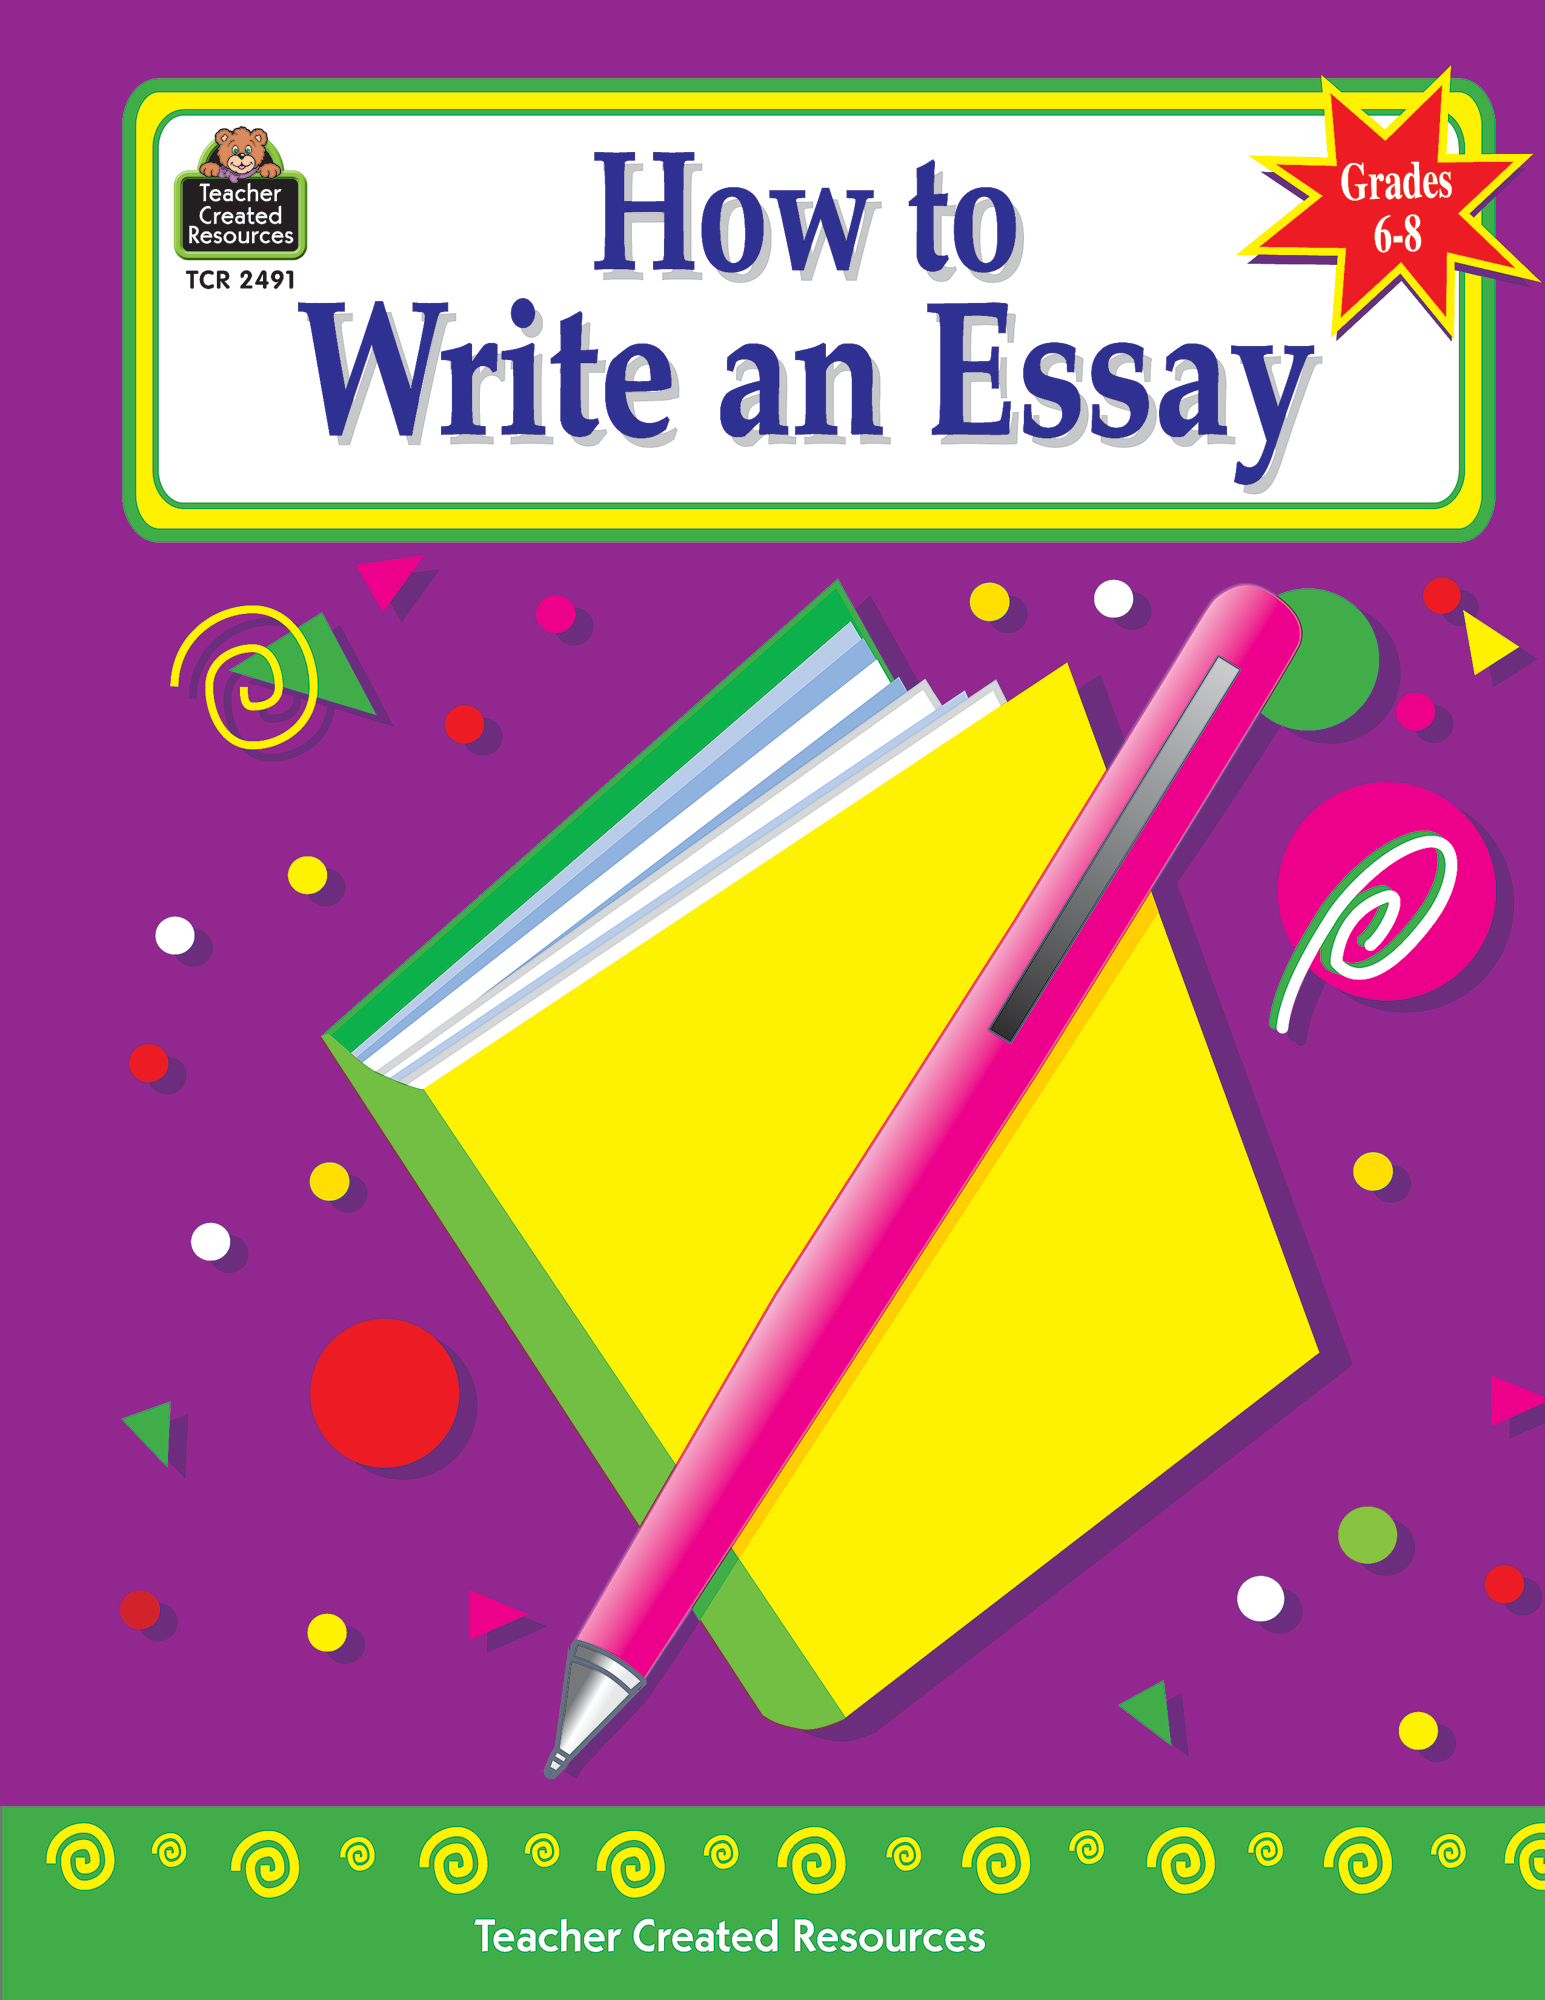 how to teach writing an essay English is my second language and struggling with essay writing and an argument essay, i find your advise but time is very short for my assessment test tomorrow i will try my best to focus on your advise and see if i can pass on this level for my future study.